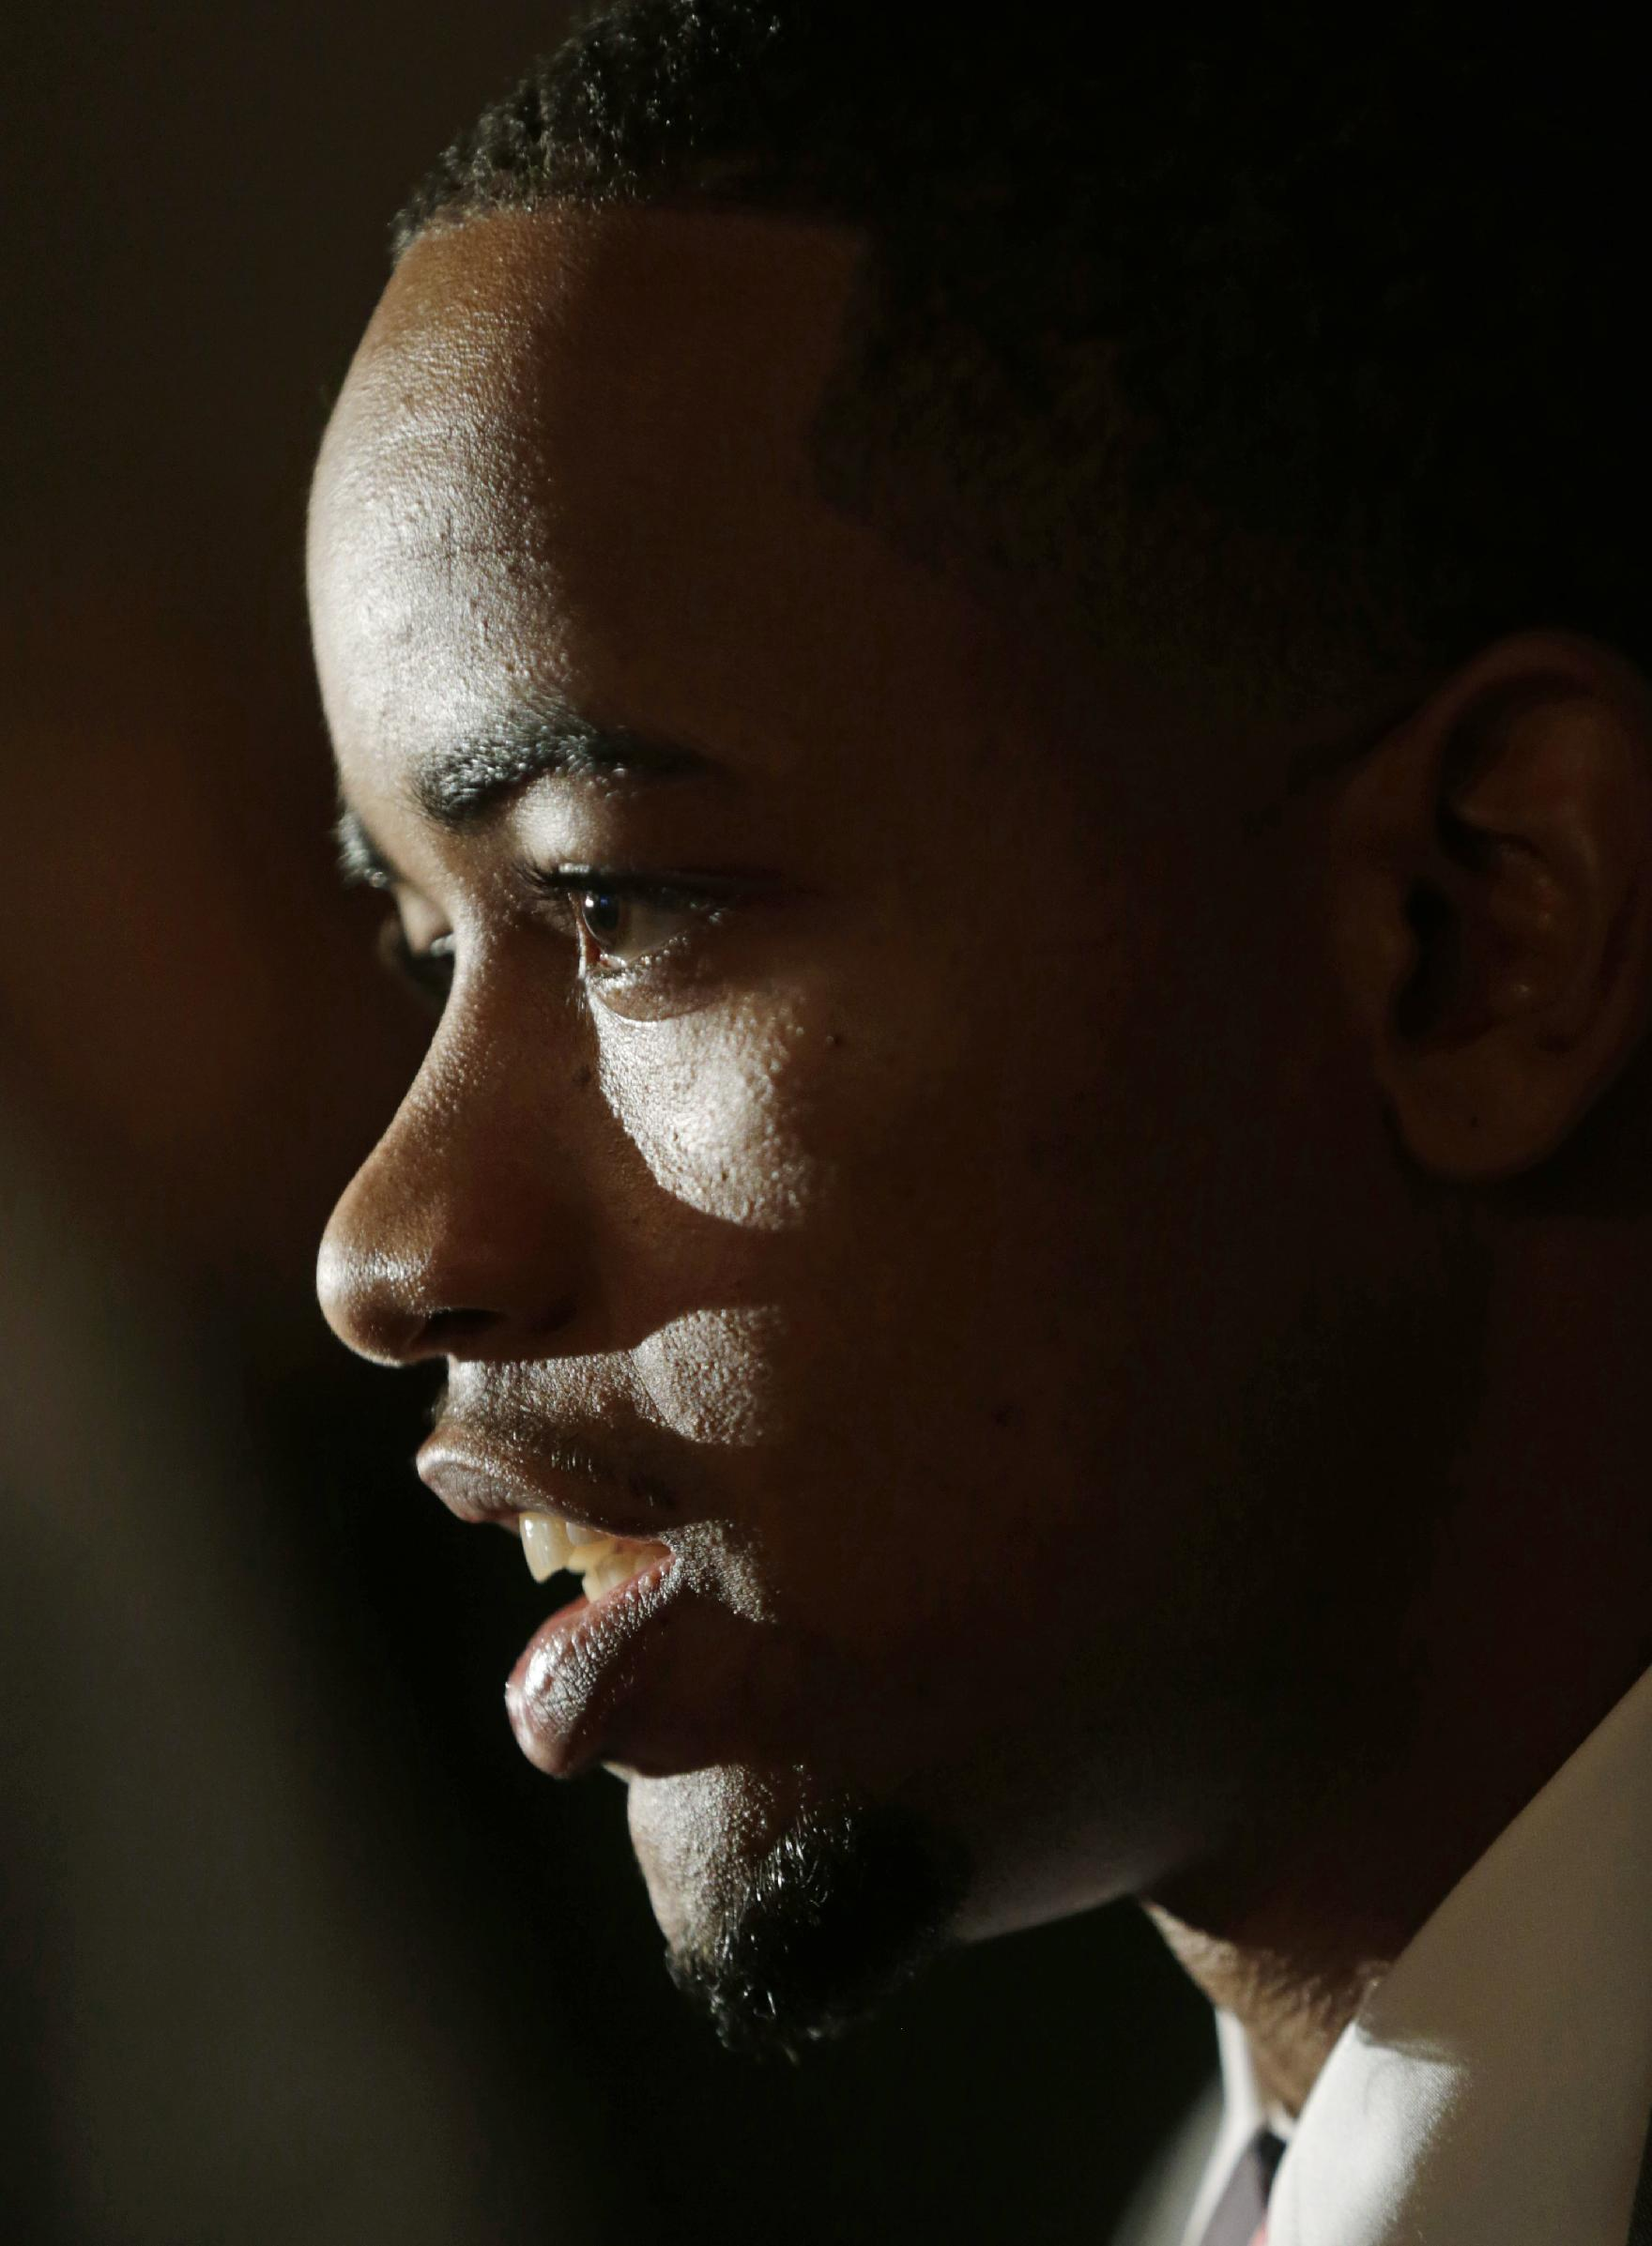 Alabama player Trevor Releford talks with reporters during Southeastern Conference NCAA college basketball media day in Birmingham, Ala., Thursday, Oct. 17, 2013